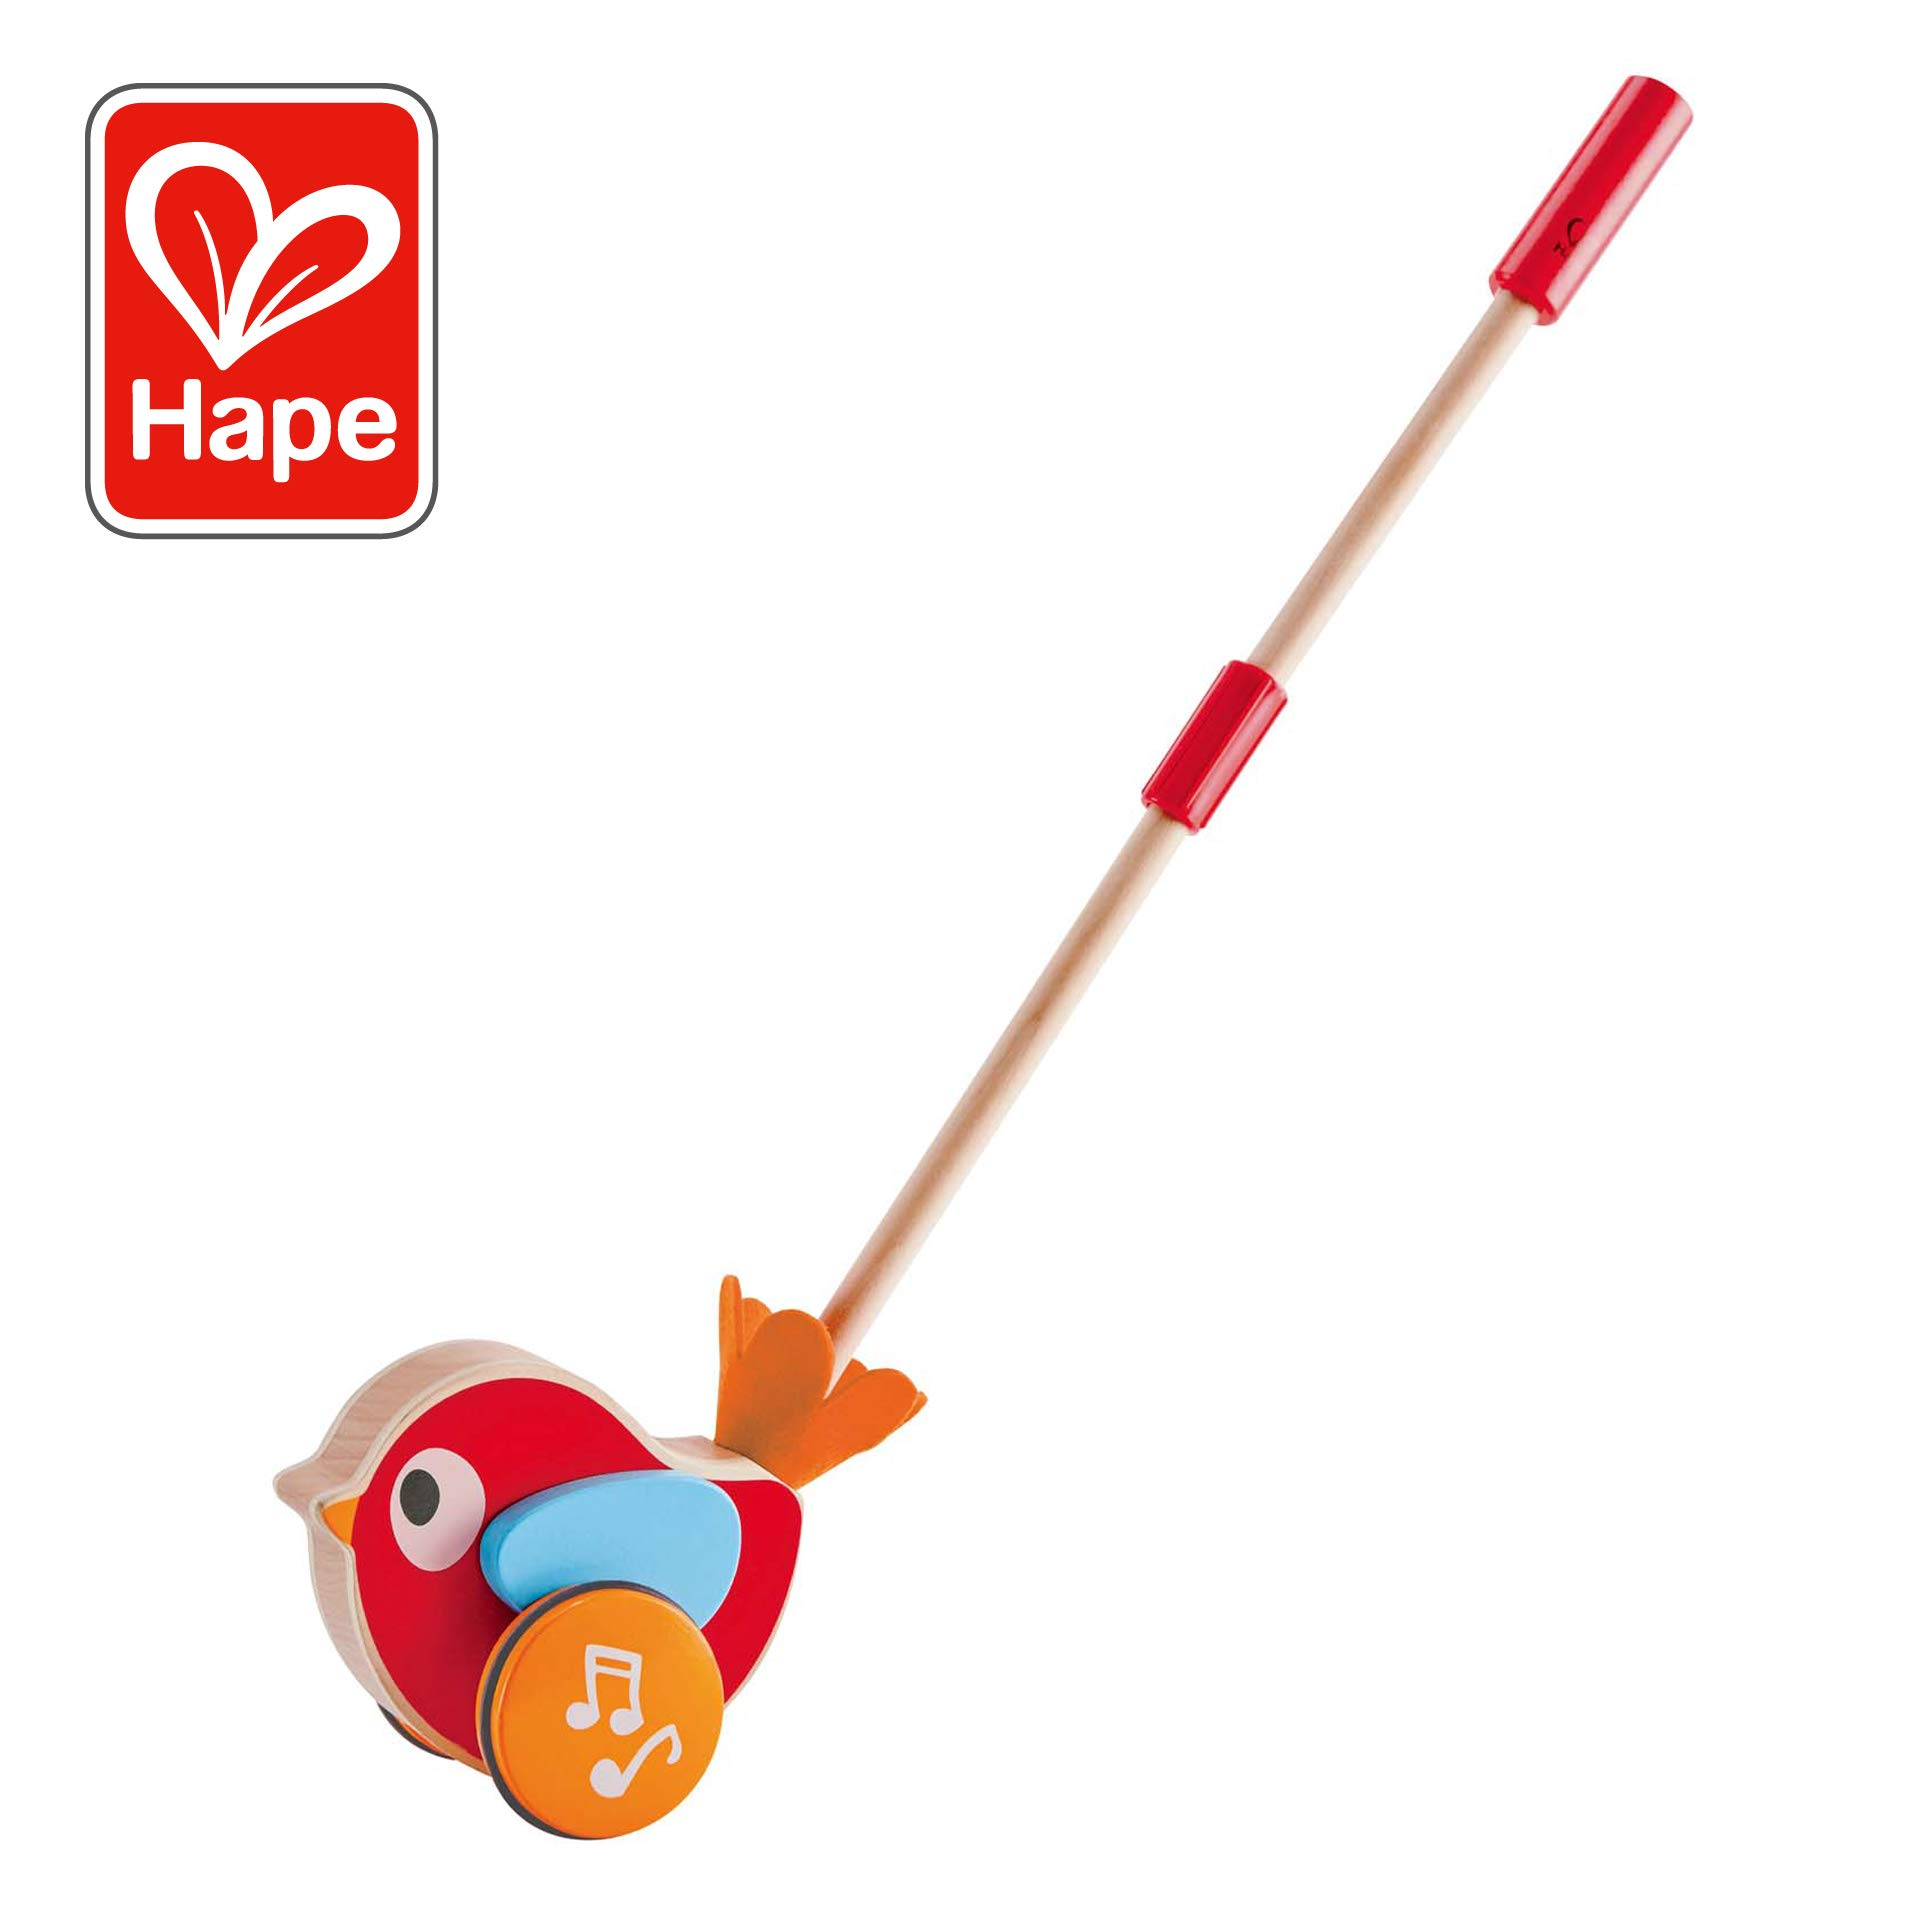 Hape Lilly Musical Wood Push Along Toy